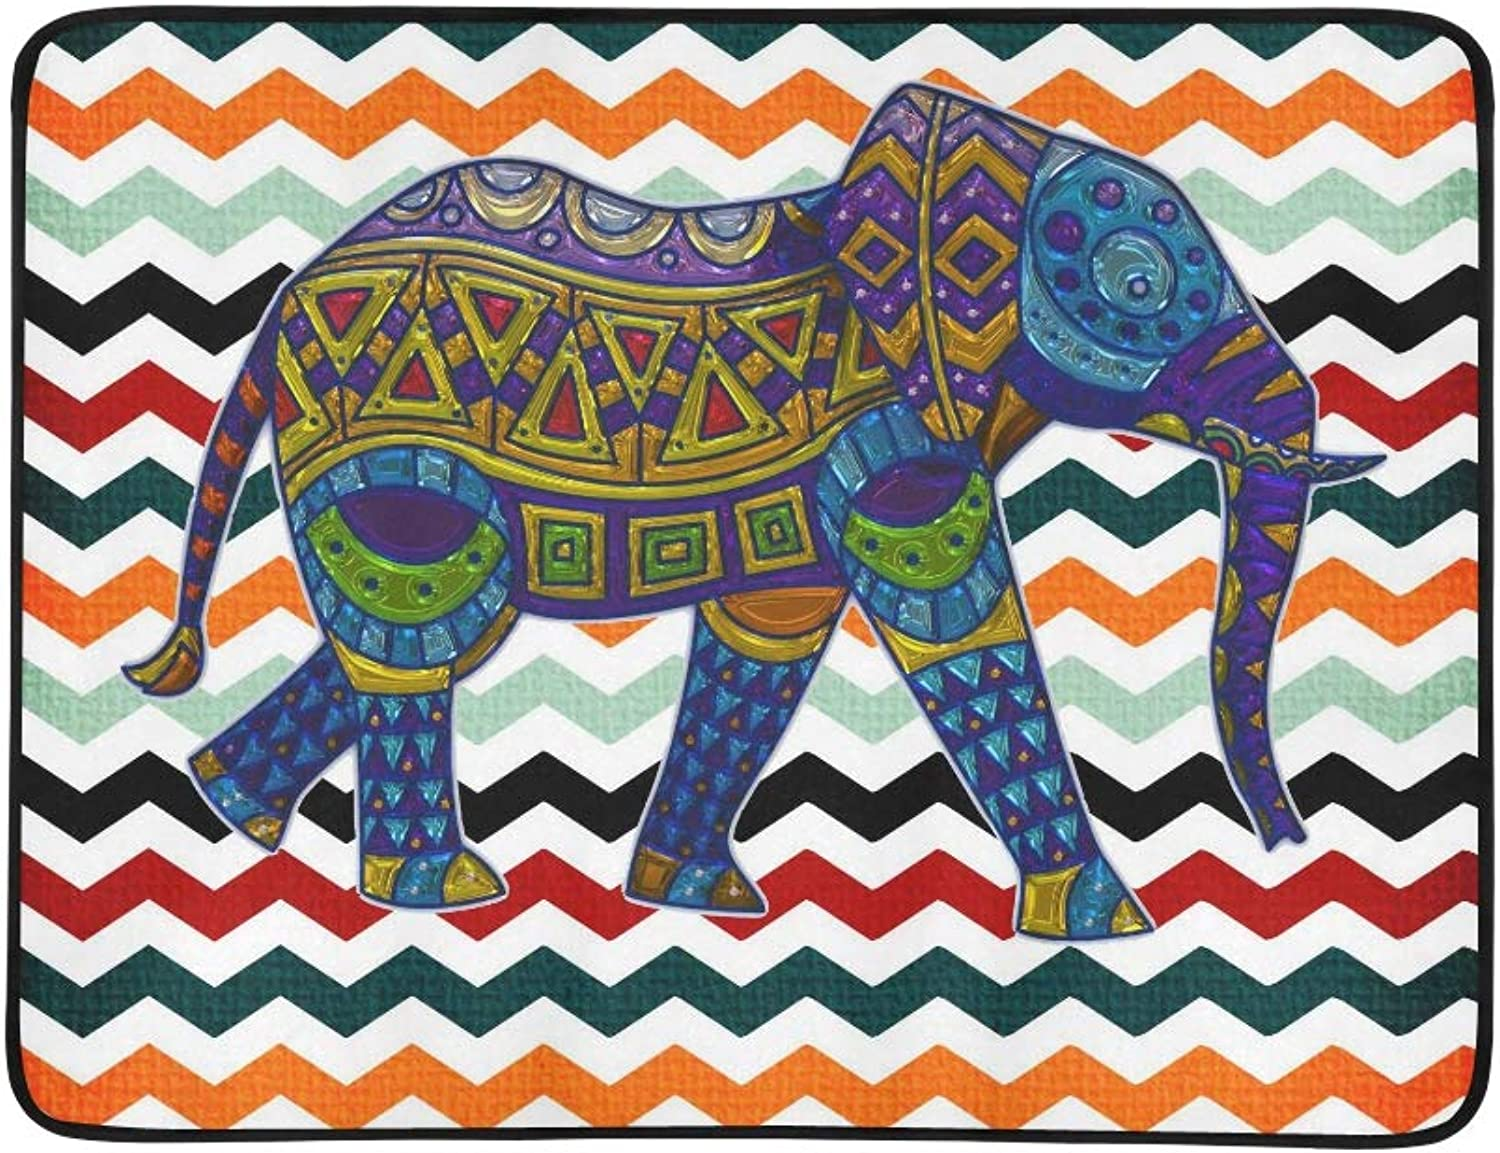 Tribal Indian Animal Elephant Chevron Pattern Pattern Portable and Foldable Blanket Mat 60x78 Inch Handy Mat for Camping Picnic Beach Indoor Outdoor Travel